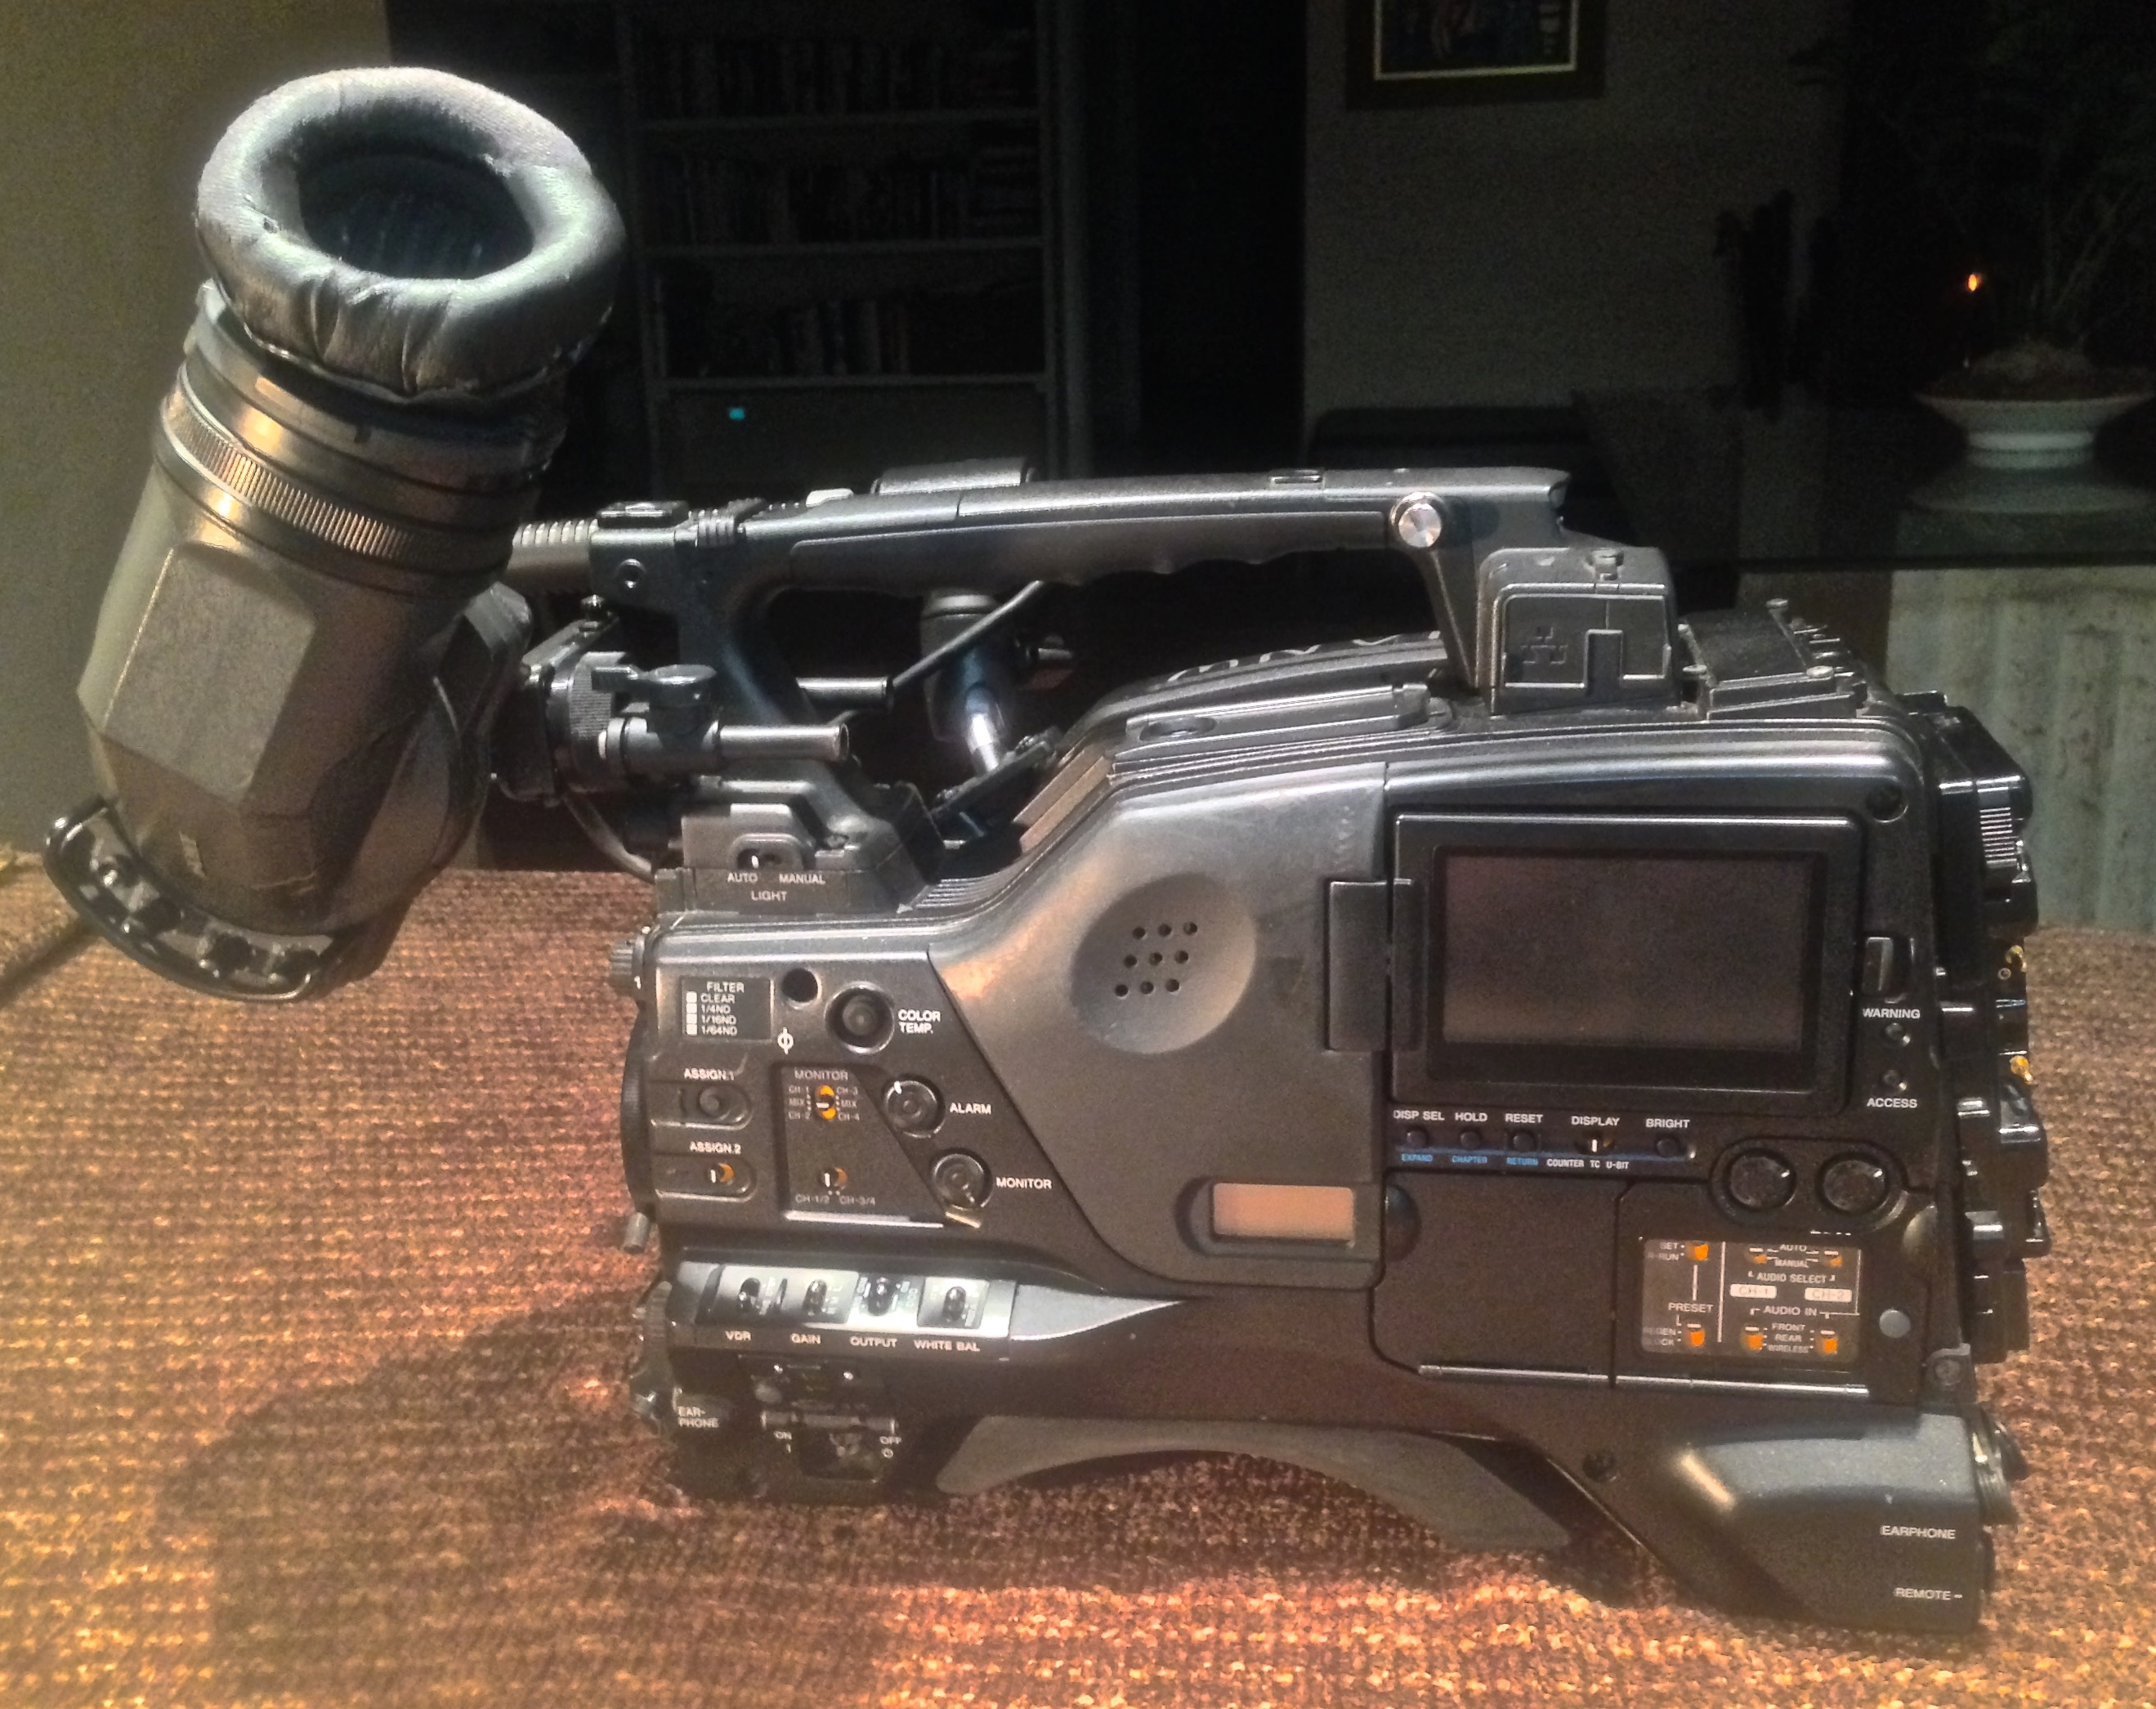 sony pdw 700 camcorder sony xdcam camcorder sony professional camcorder rh newprovideo com sony pdw-700 maintenance manual sony xdcam 700 manual